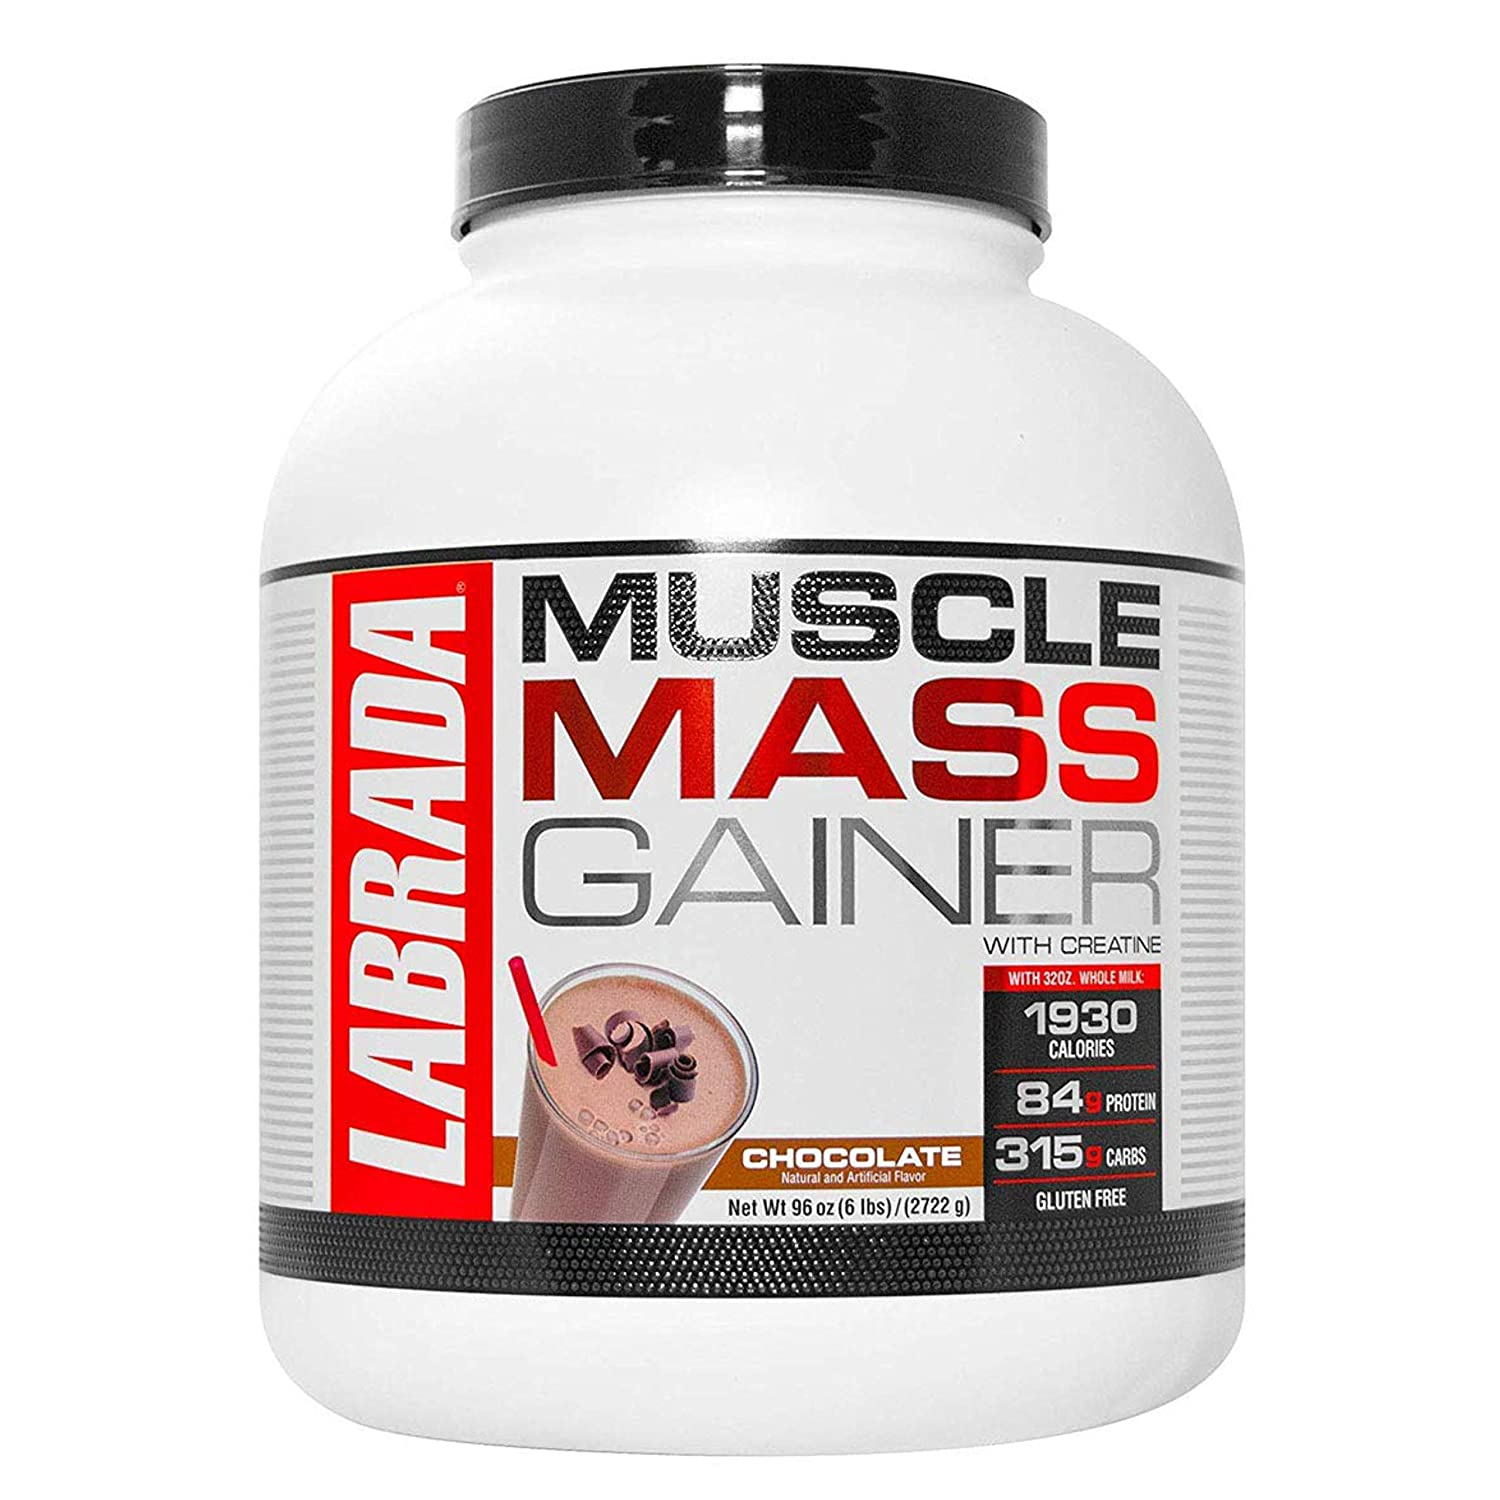 Gain Muscle Mass with Gainer Supplements